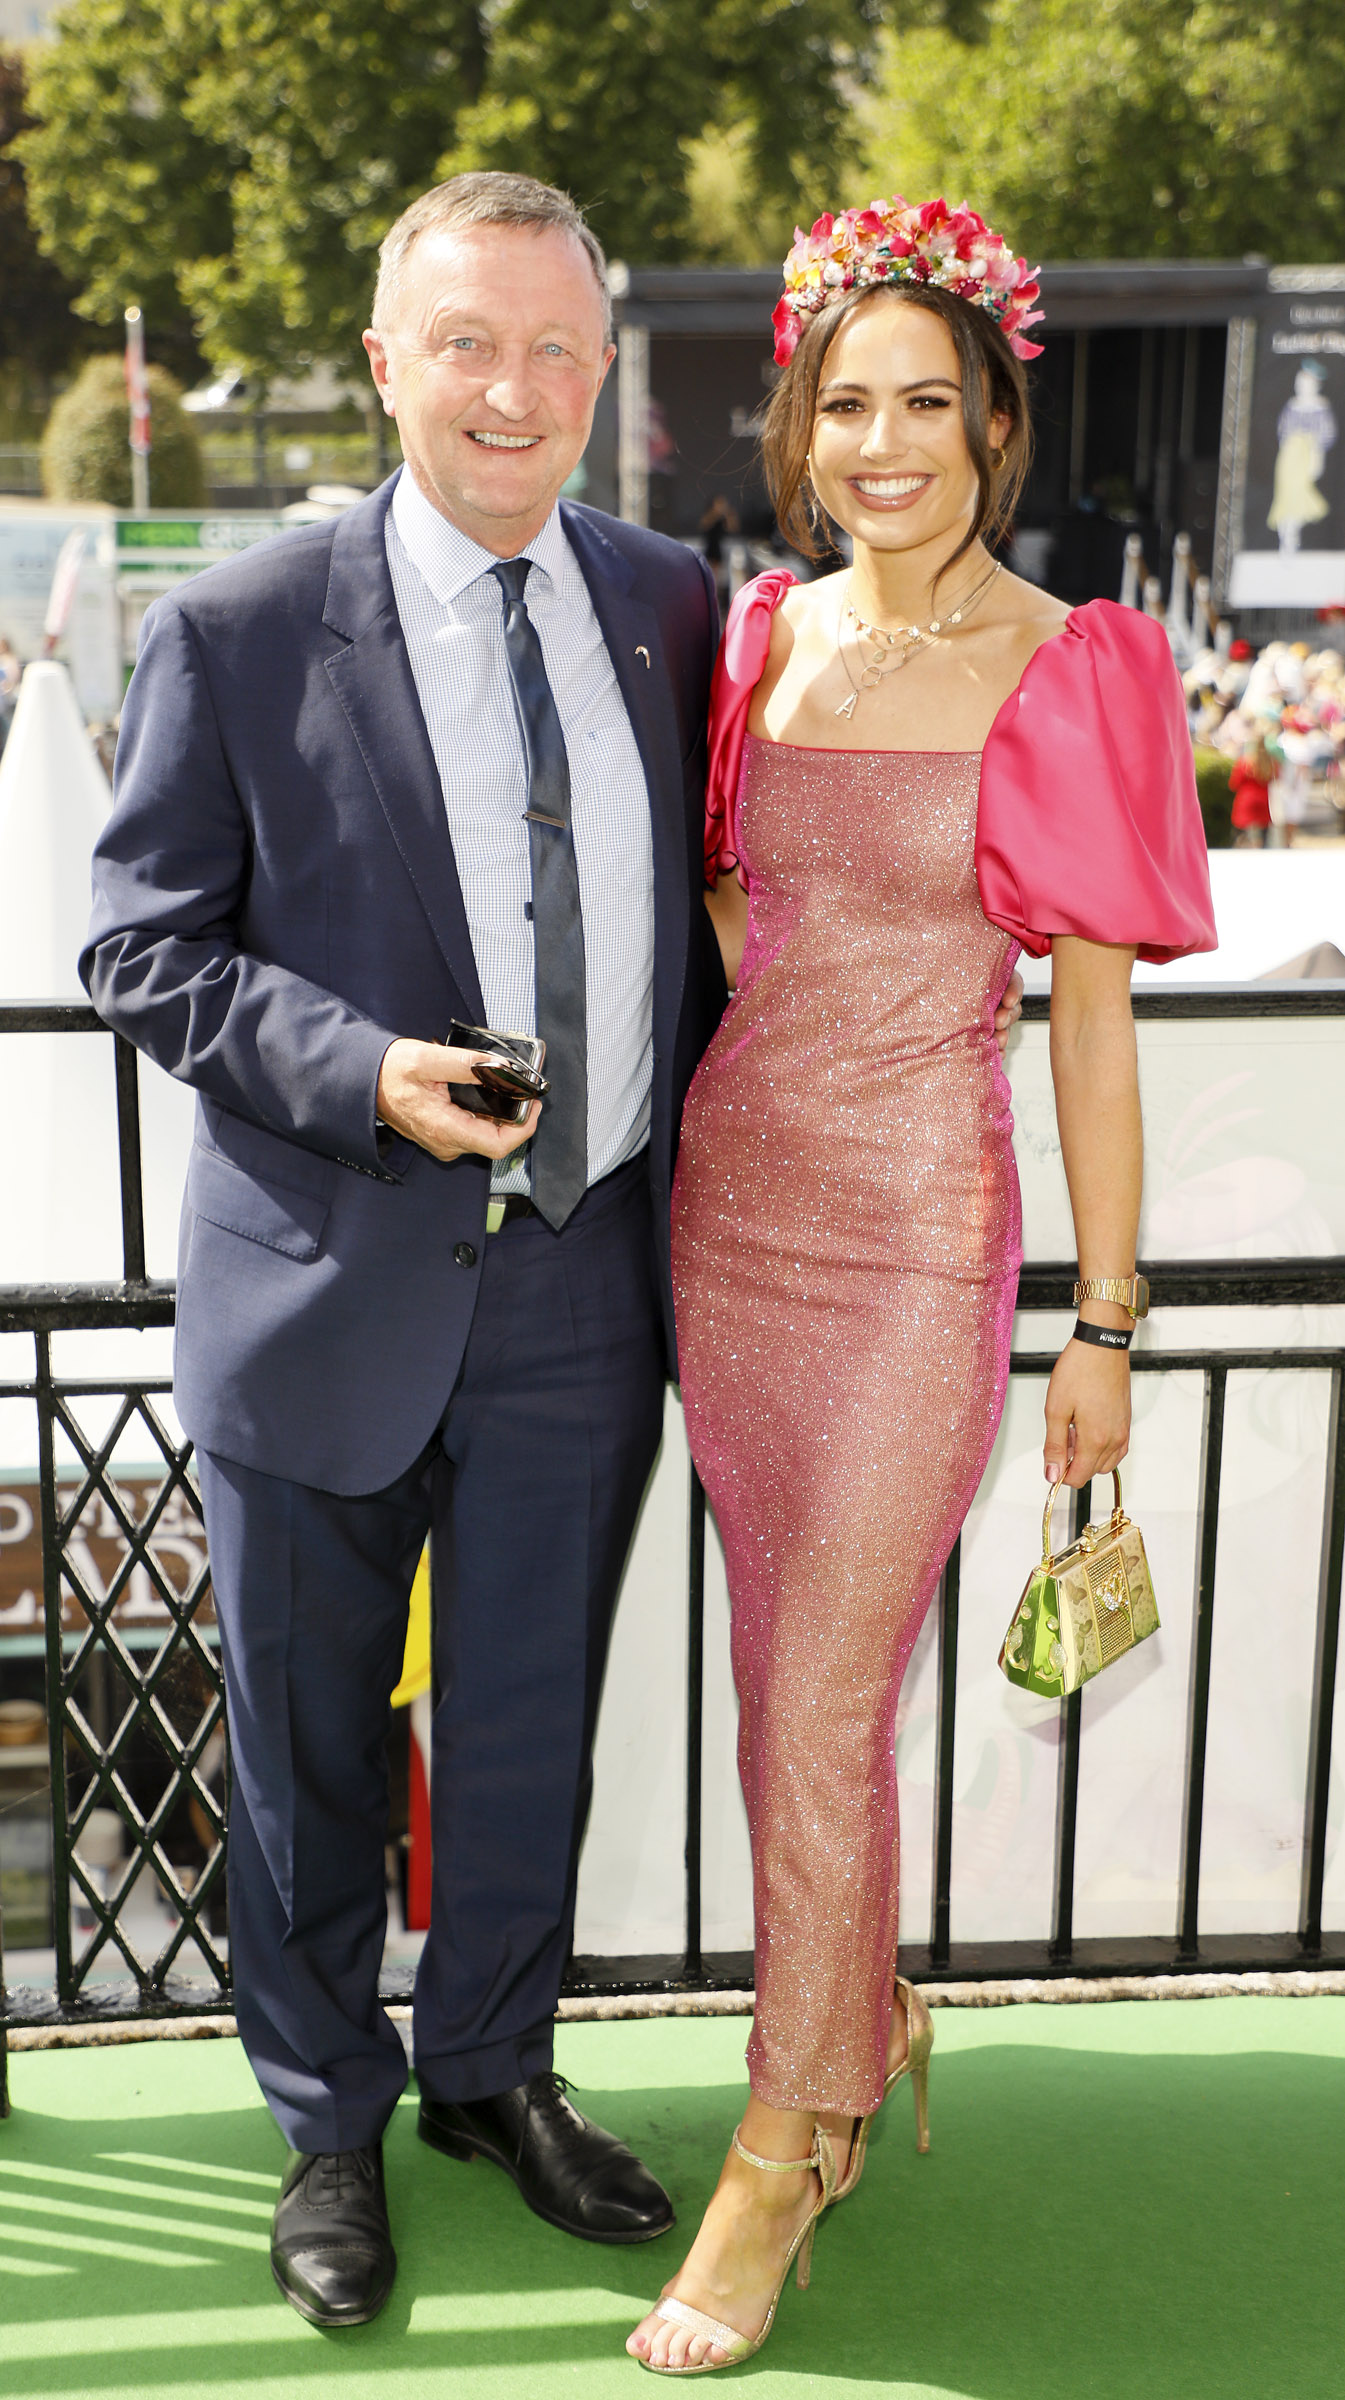 Don Nugent and Aisling Kavanagh at the Dundrum Town Centre Ladies' Day at the Dublin Horse Show in the RDS. Photo: Kieran Harnett